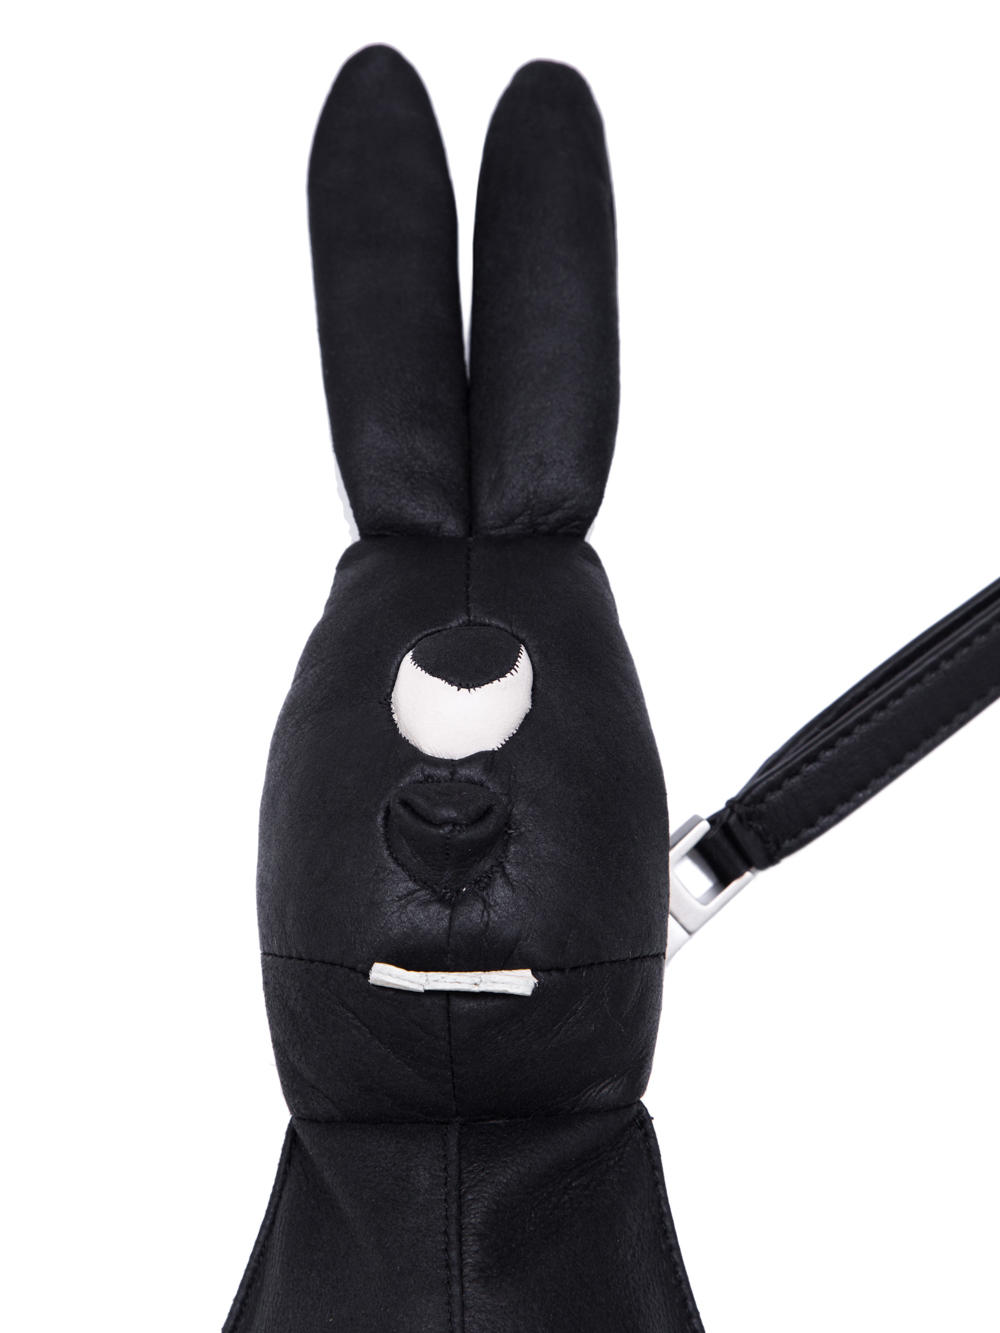 RICK OWENS HUN SIAMESE BUNNY IN BLACK LEATHER